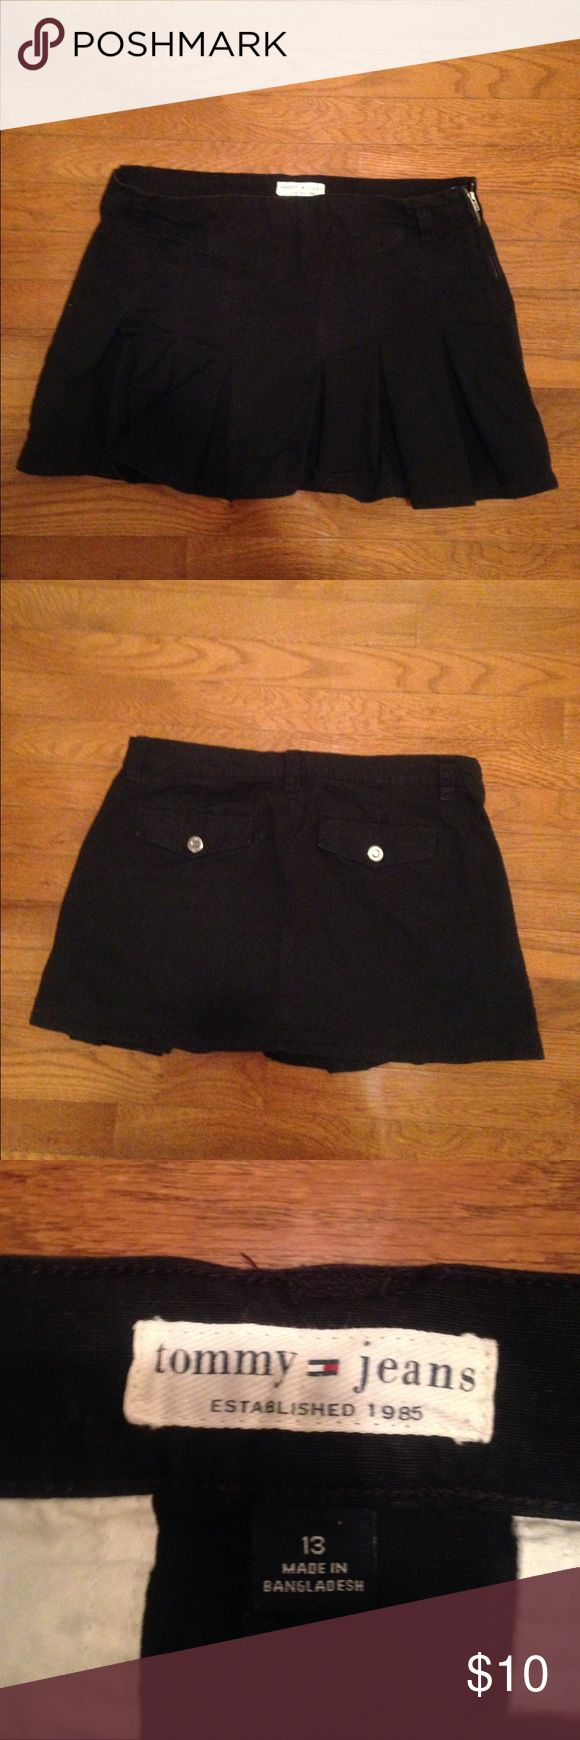 Tommy Hilfiger Pleated Skirt Black khaki skirt w/ zipper on the side Tommy Hilfiger Skirts